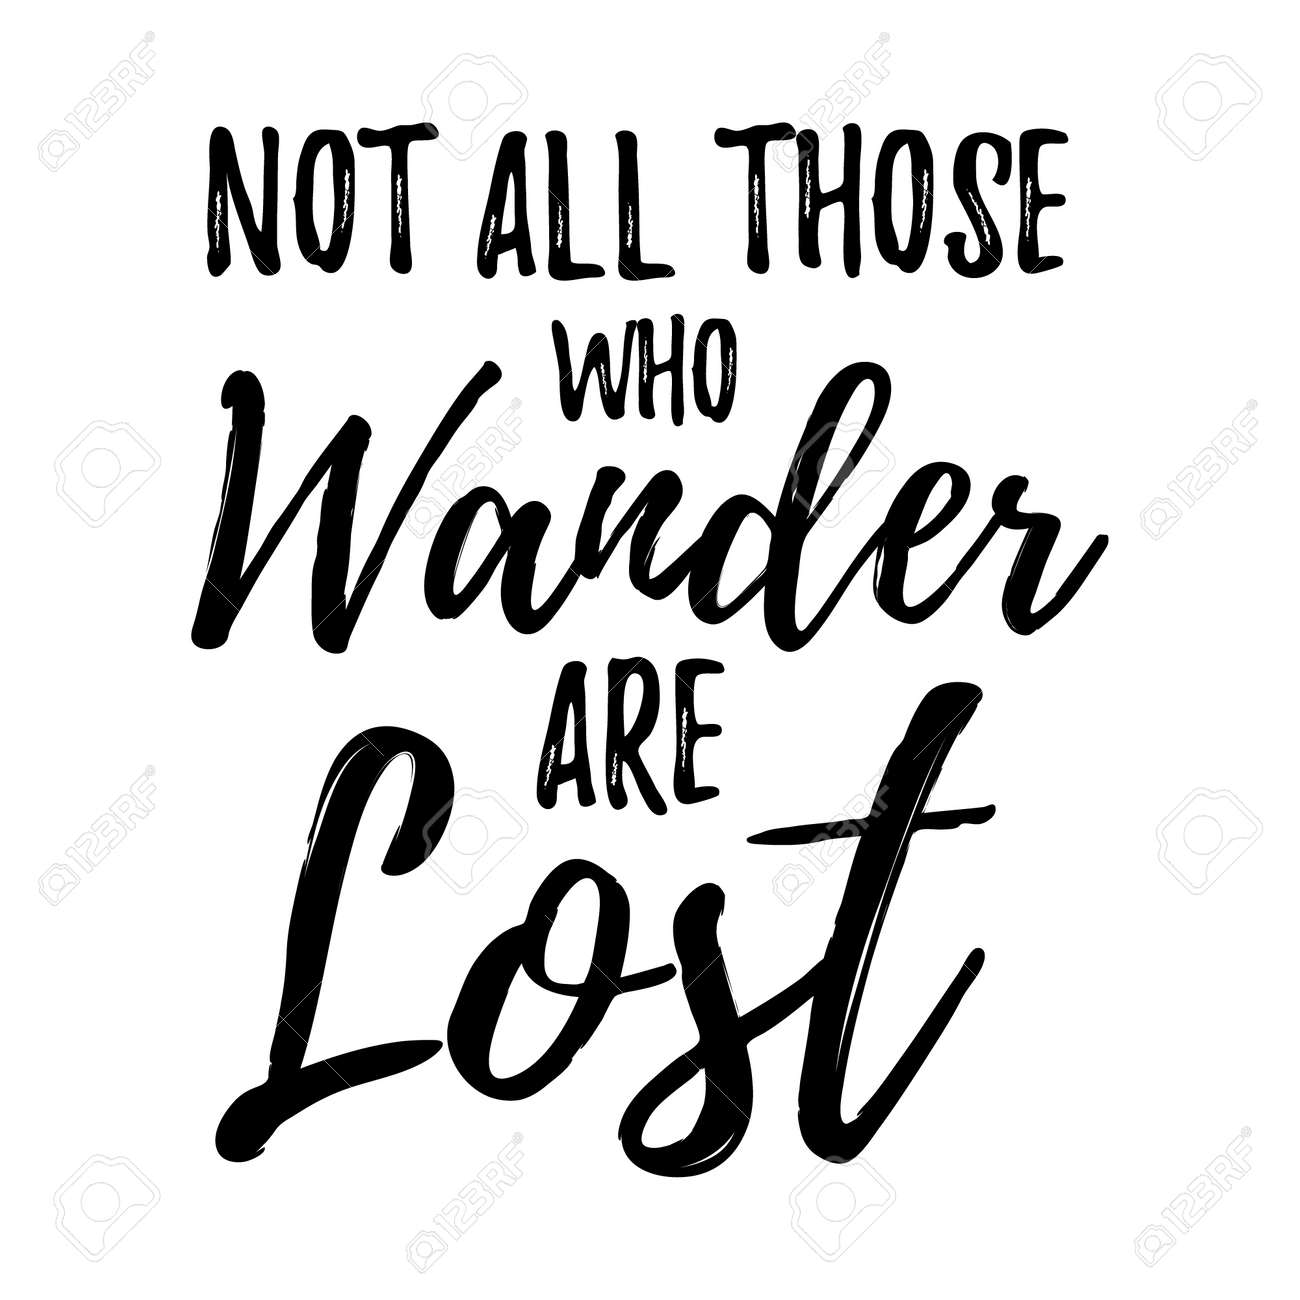 Not All Those Who Wander Are Lost Motivational Lettering Poster